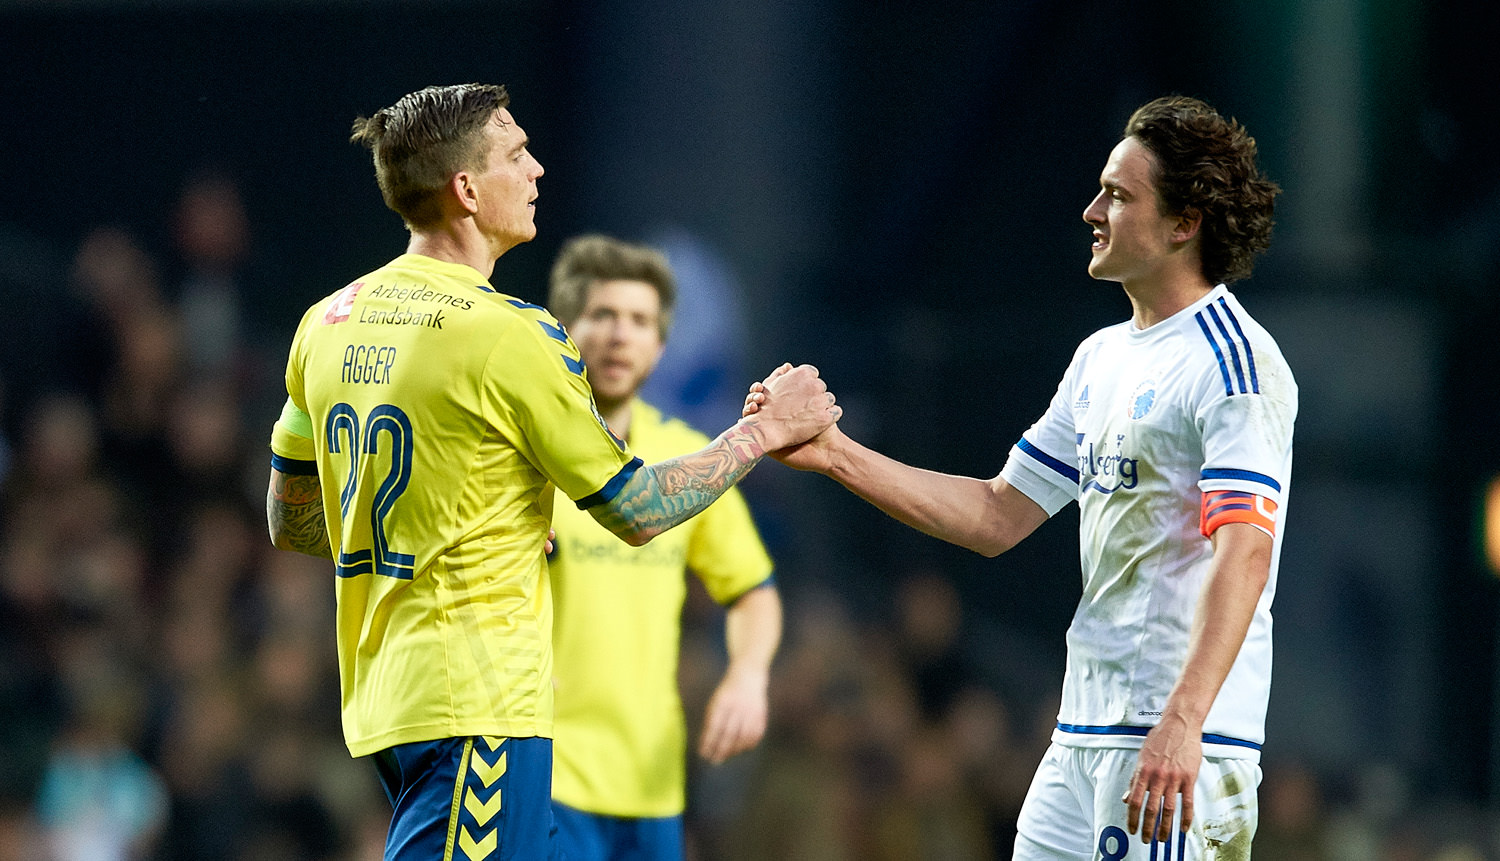 COPENHAGEN, DENMARK - APRIL 17: Daniel Agger of Brondby IF and Thomas Delaney of FC Copenhagen shake hands after the Danish Alka Superliga match between FC Copenhagen and Brondby IF at Telia Parken Stadium on April 17, 2016 in Copenhagen, Denmark. (Photo by Lars Ronbog / FrontZoneSport via Getty Images)